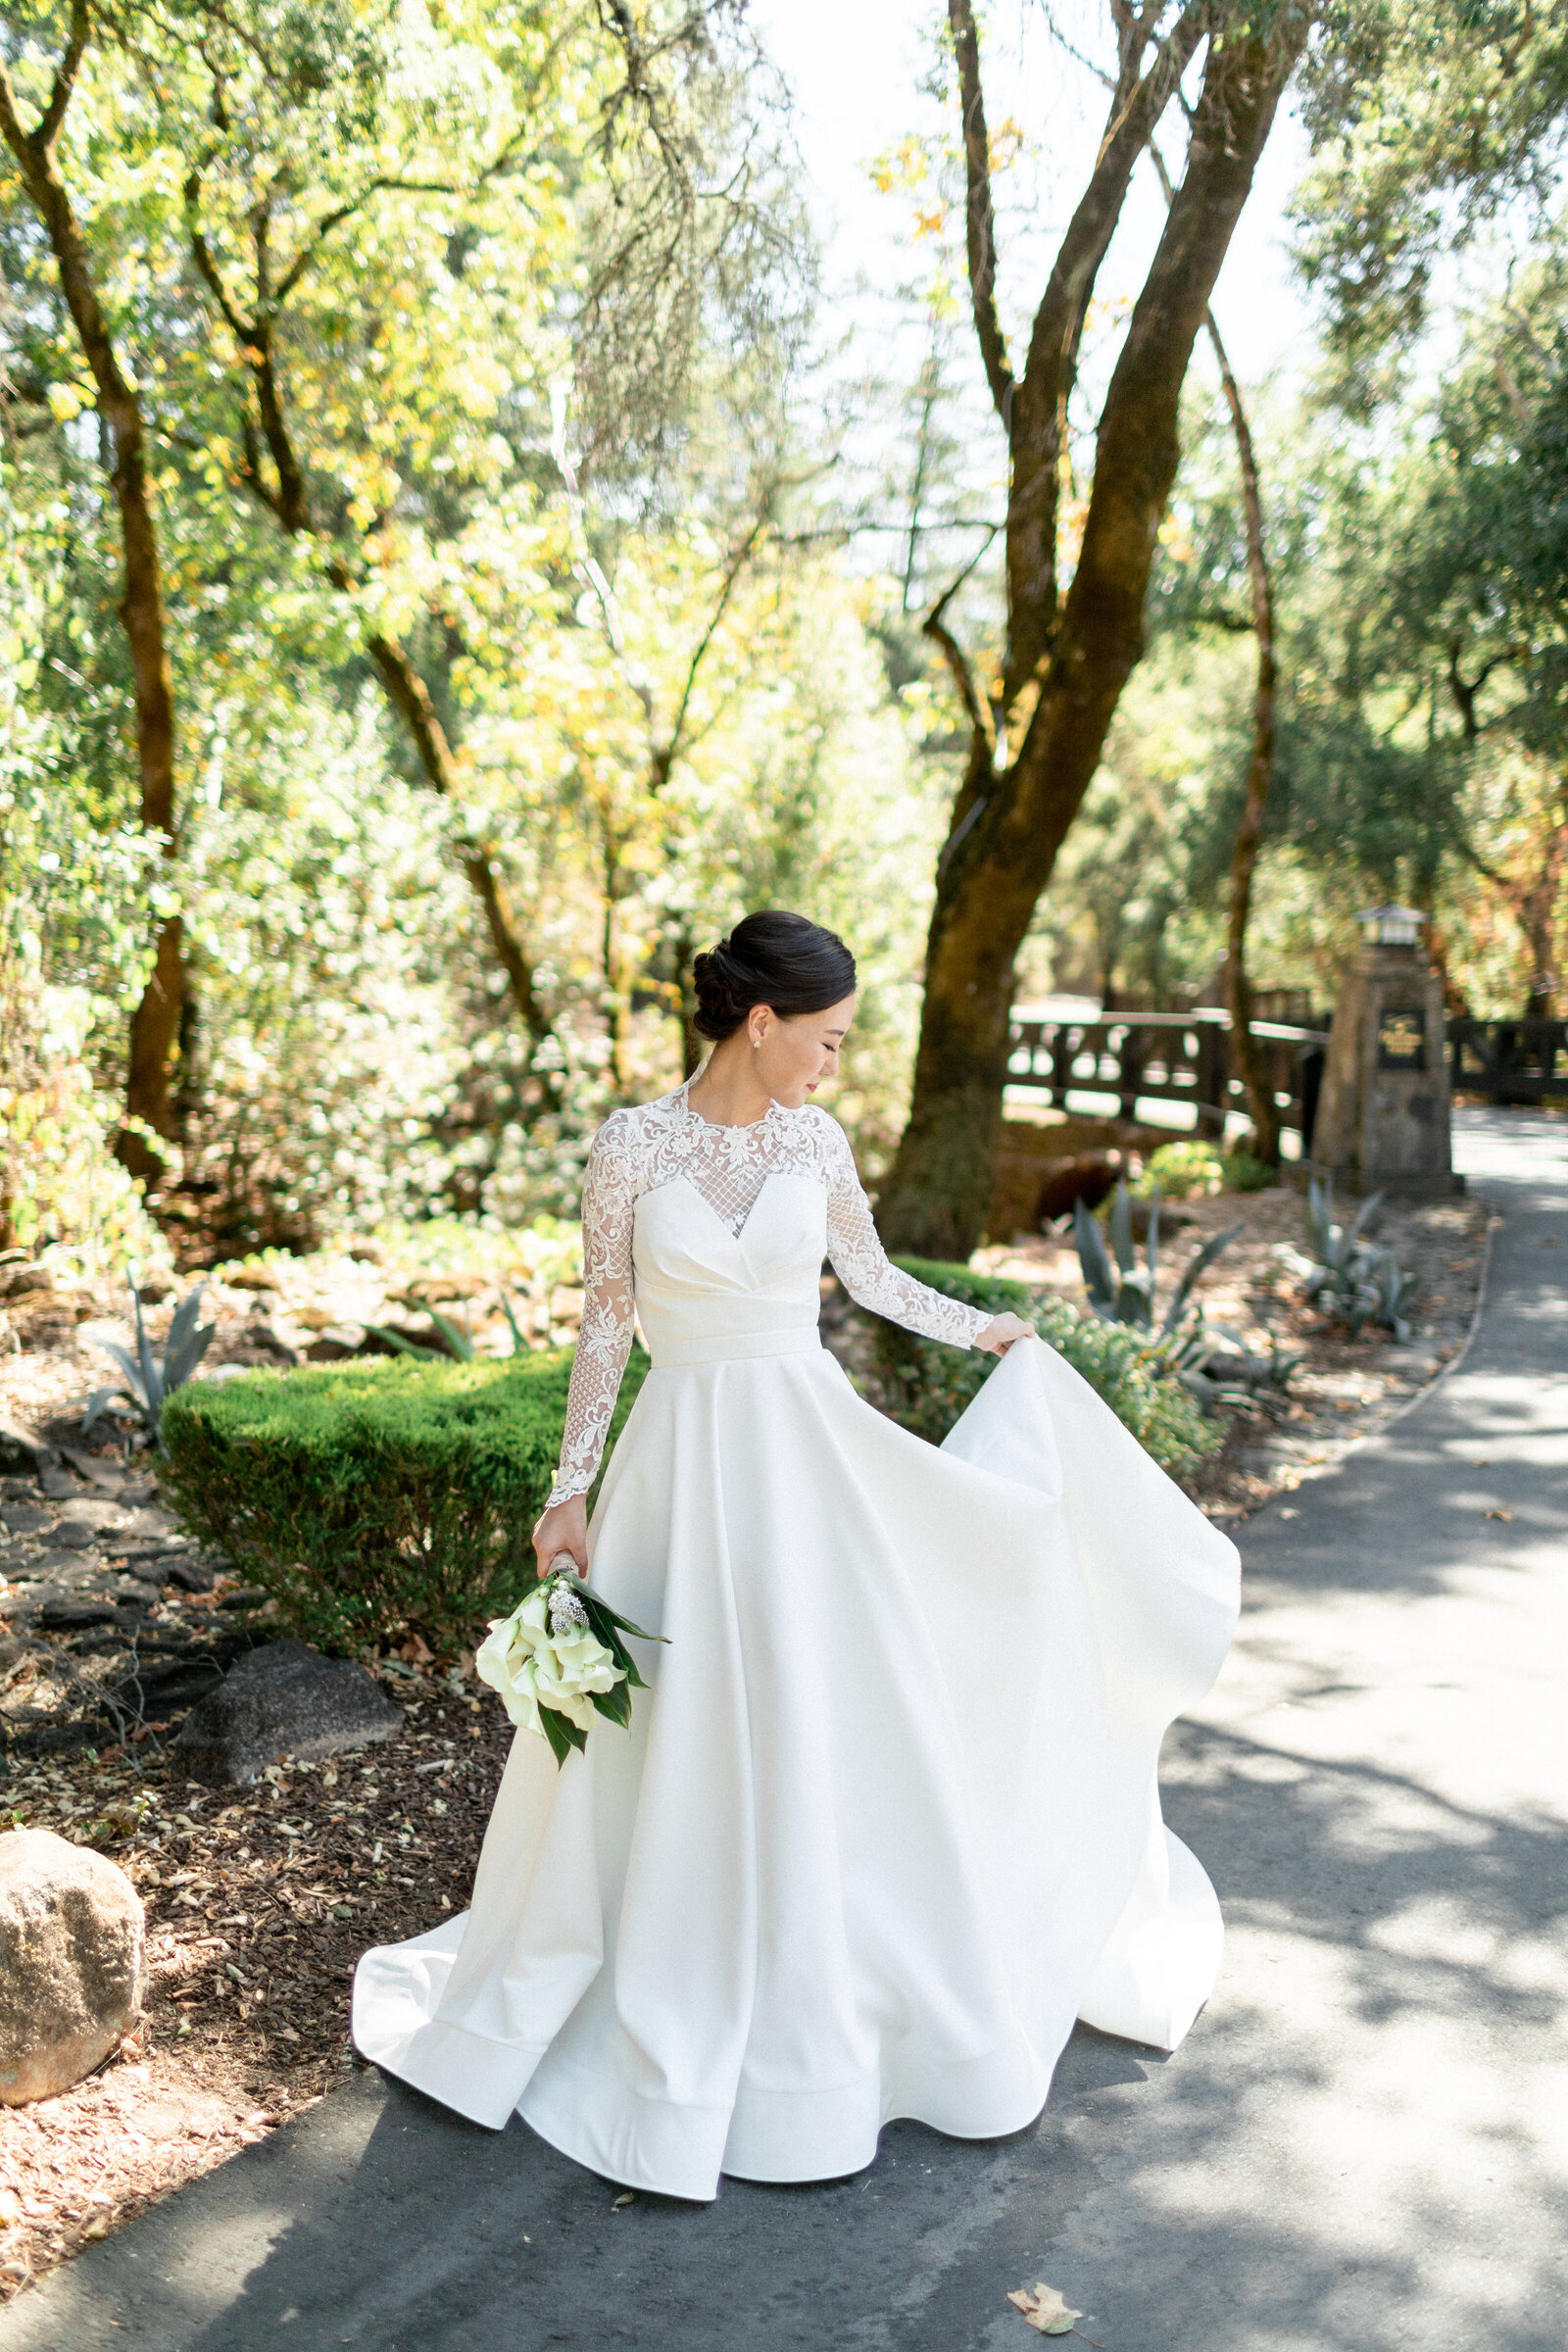 larissa-cleveland-elope-eleopement-intimate-wedding-photographer-san-francisco-napa-carmel-038